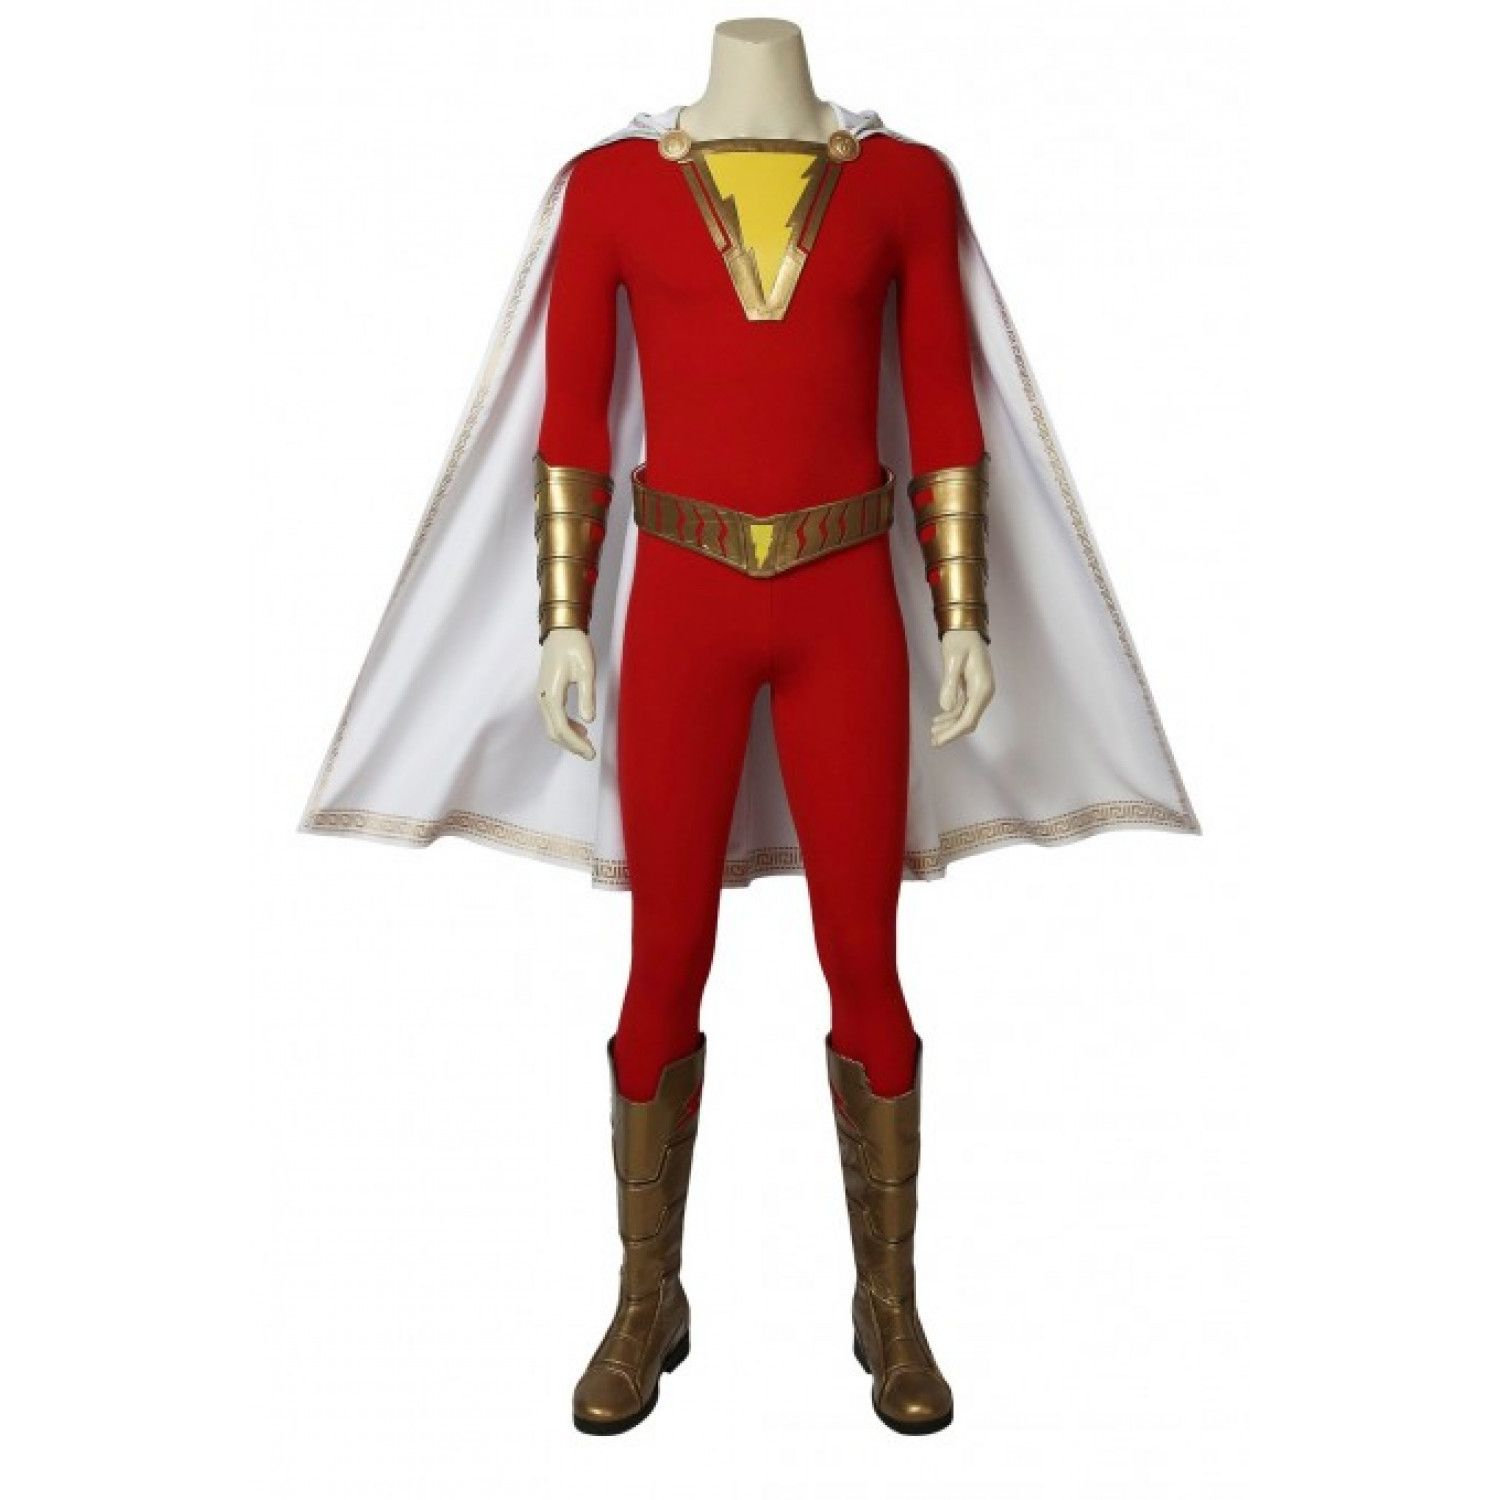 Dc Comics Captain Marvel Shazam Cosplay Costume American Comics Costume Captain Marvel Shazam Captain Marvel Costume Comic Costume And, for captain marvel, he led a team of equally talented artists including jackson sze, ian joyner, anthony francisco, adam ross, tully summers because captain marvel is part of an elite military force, the kree, the design team wanted to create a military space suit that looked like it could endure. pinterest